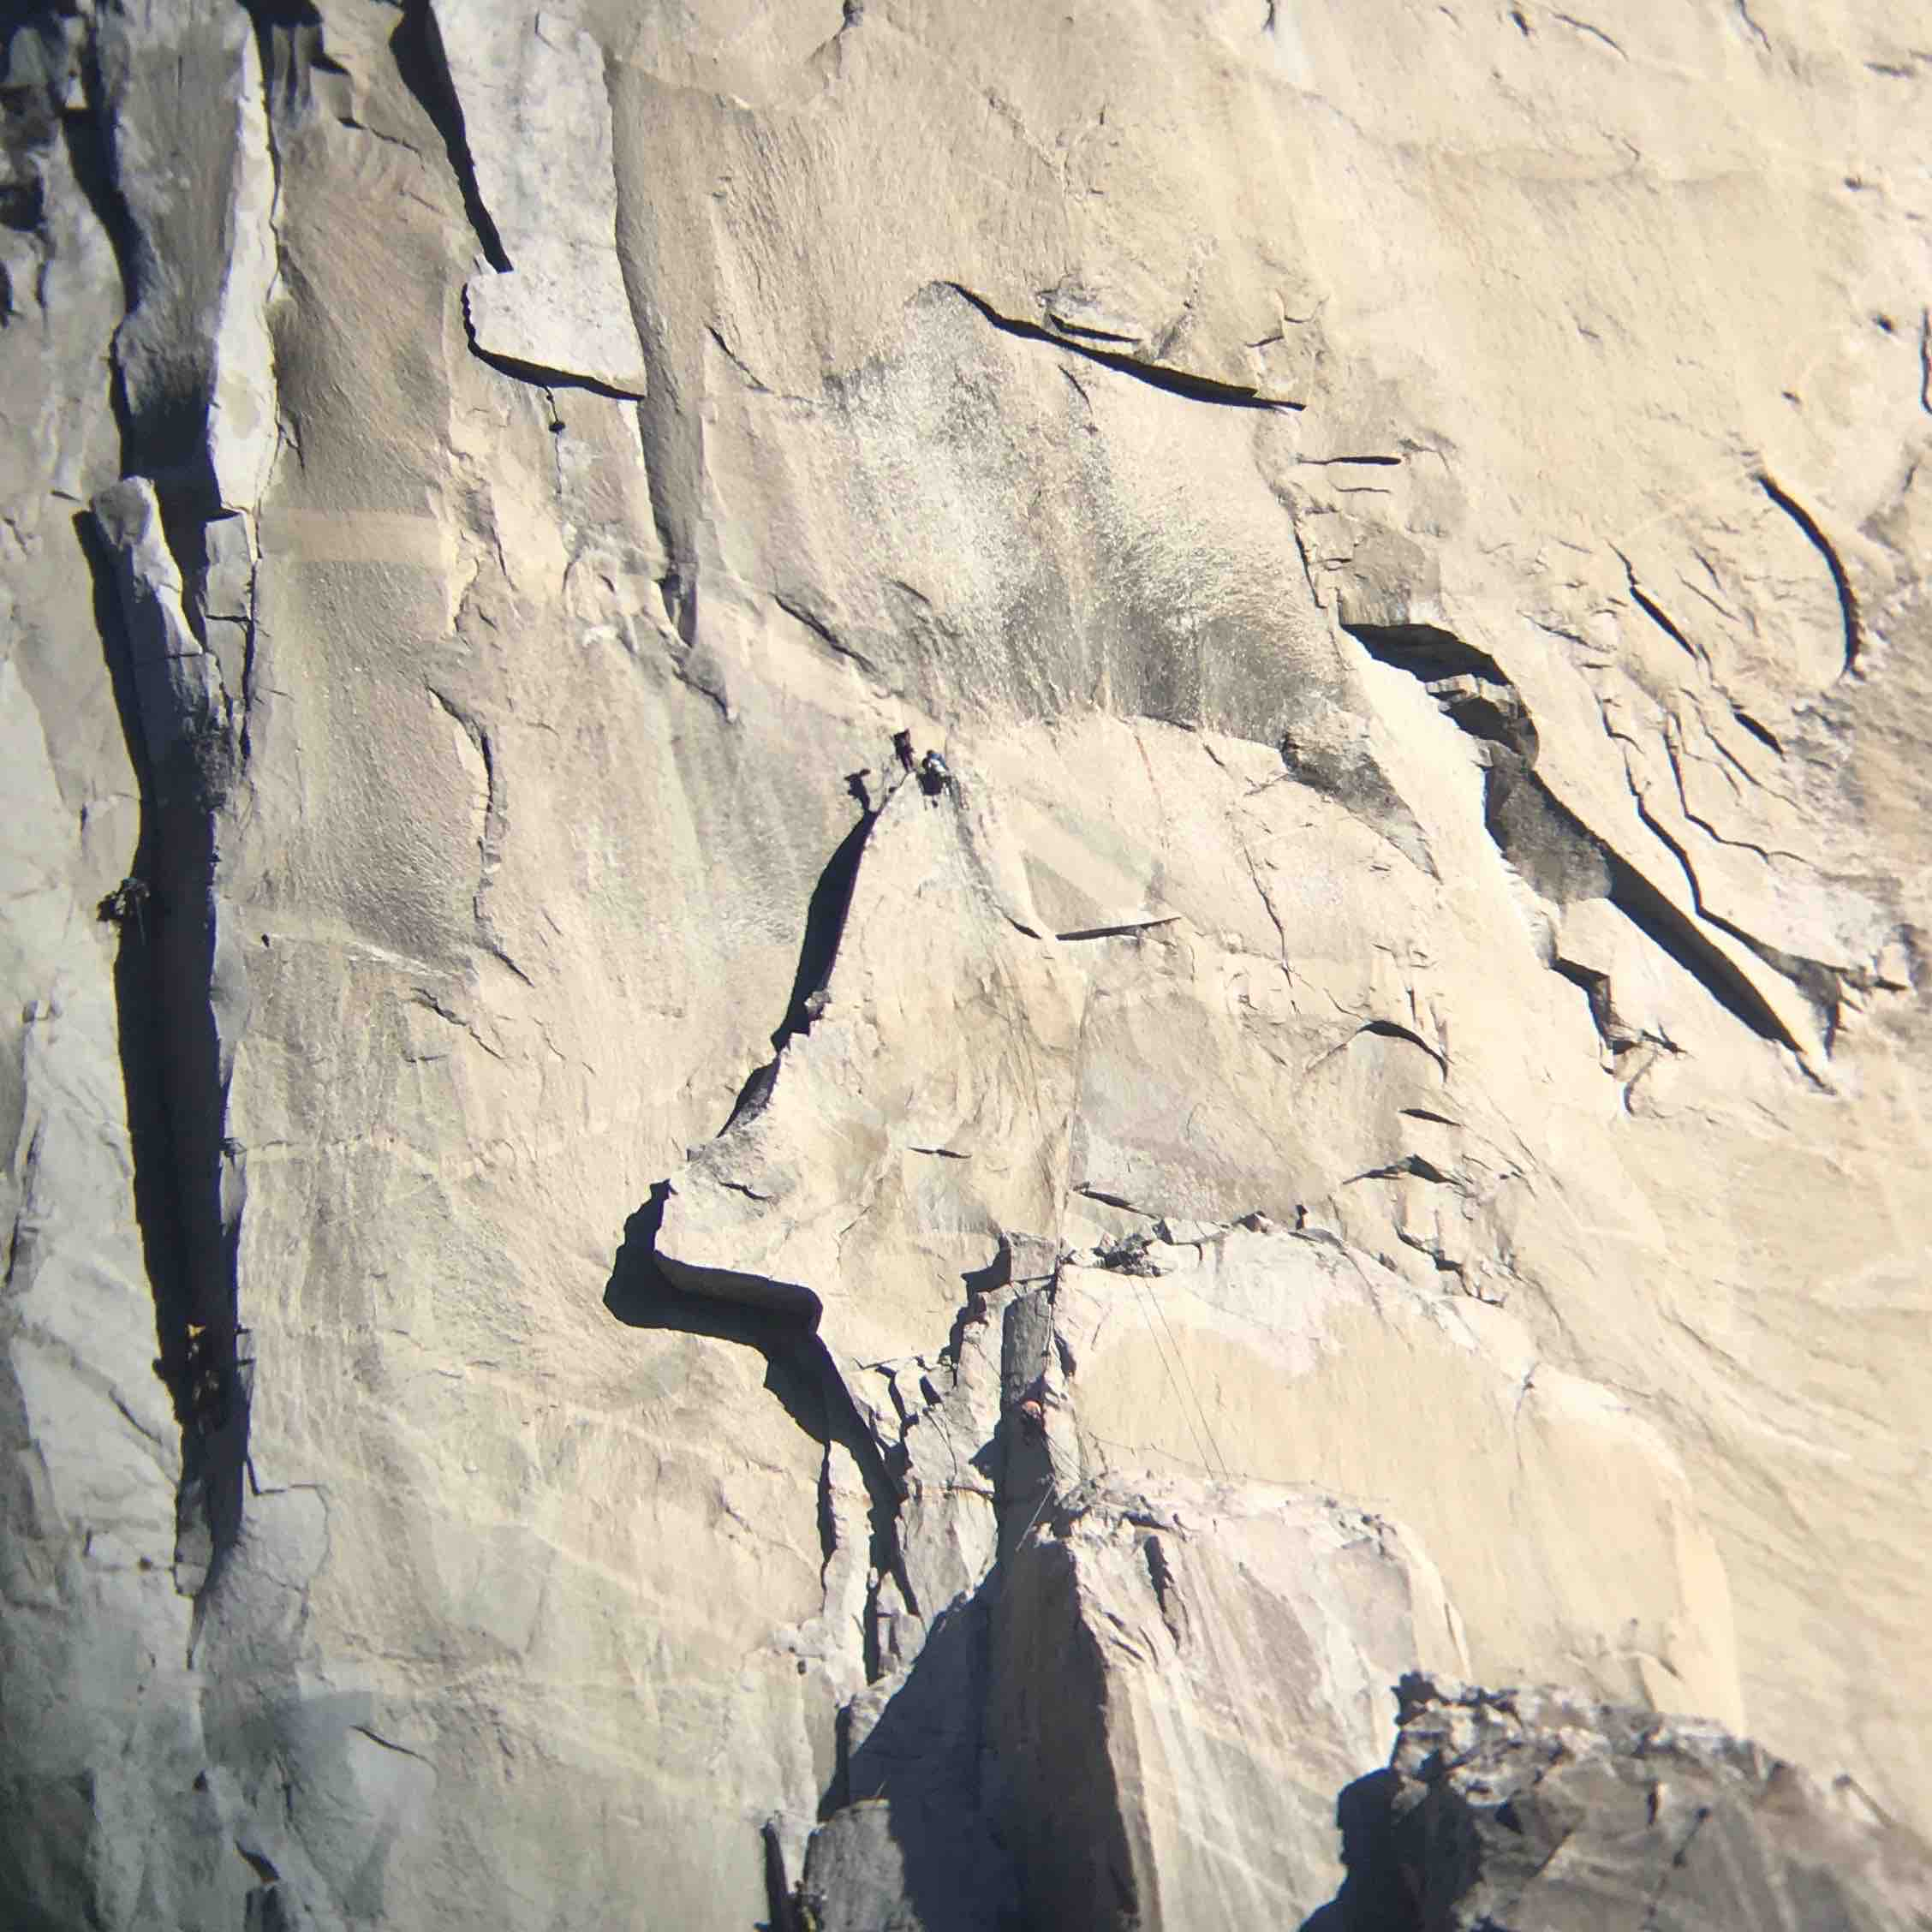 Josh and I on Texas Flake as seen through binoculars from the Valley floor.